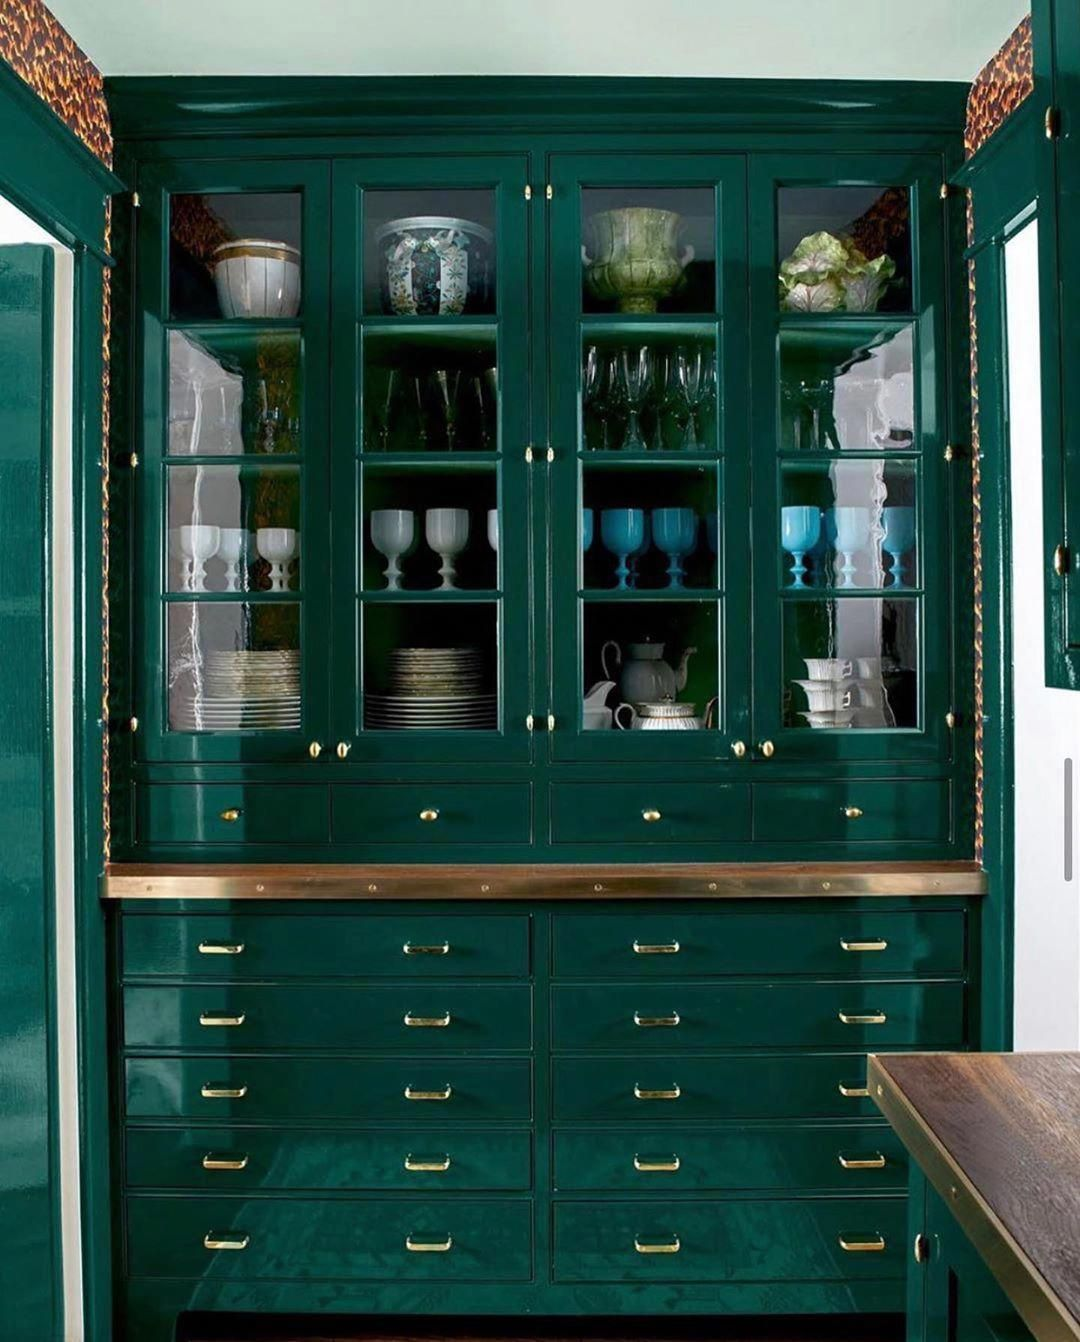 15 Kitchen Cleaning Hacks You Had Us At Green Lacquer Butlers Pantry Kitchenhacks In 2020 Green Kitchen Green Kitchen Cabinets Kitchen Cabinet Colors